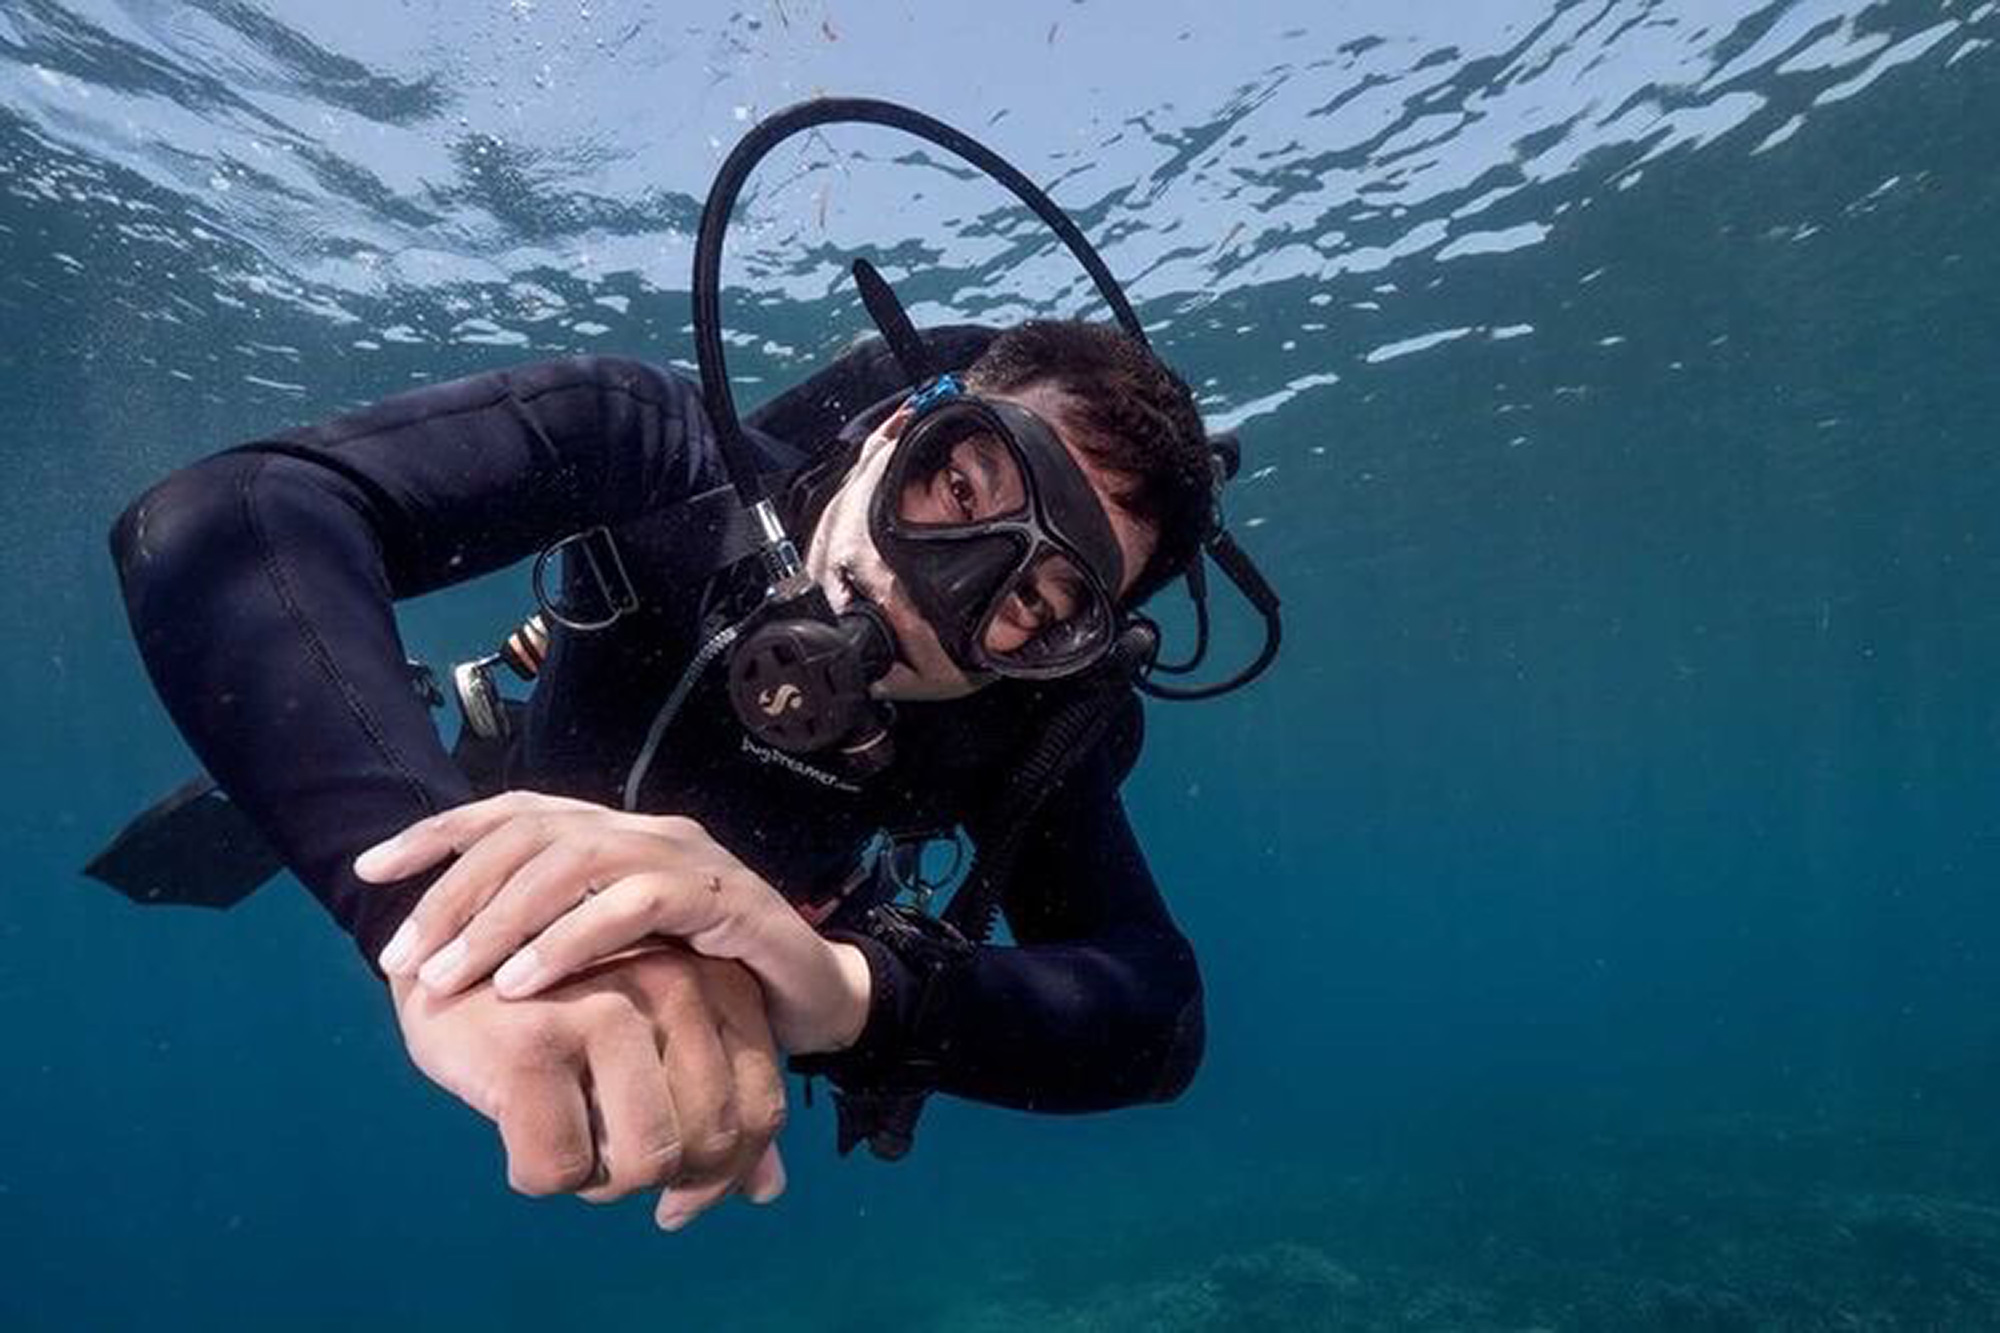 VIDEO: I Ssssee You: Diver Swims With One Of The World's Deadliest Snakes